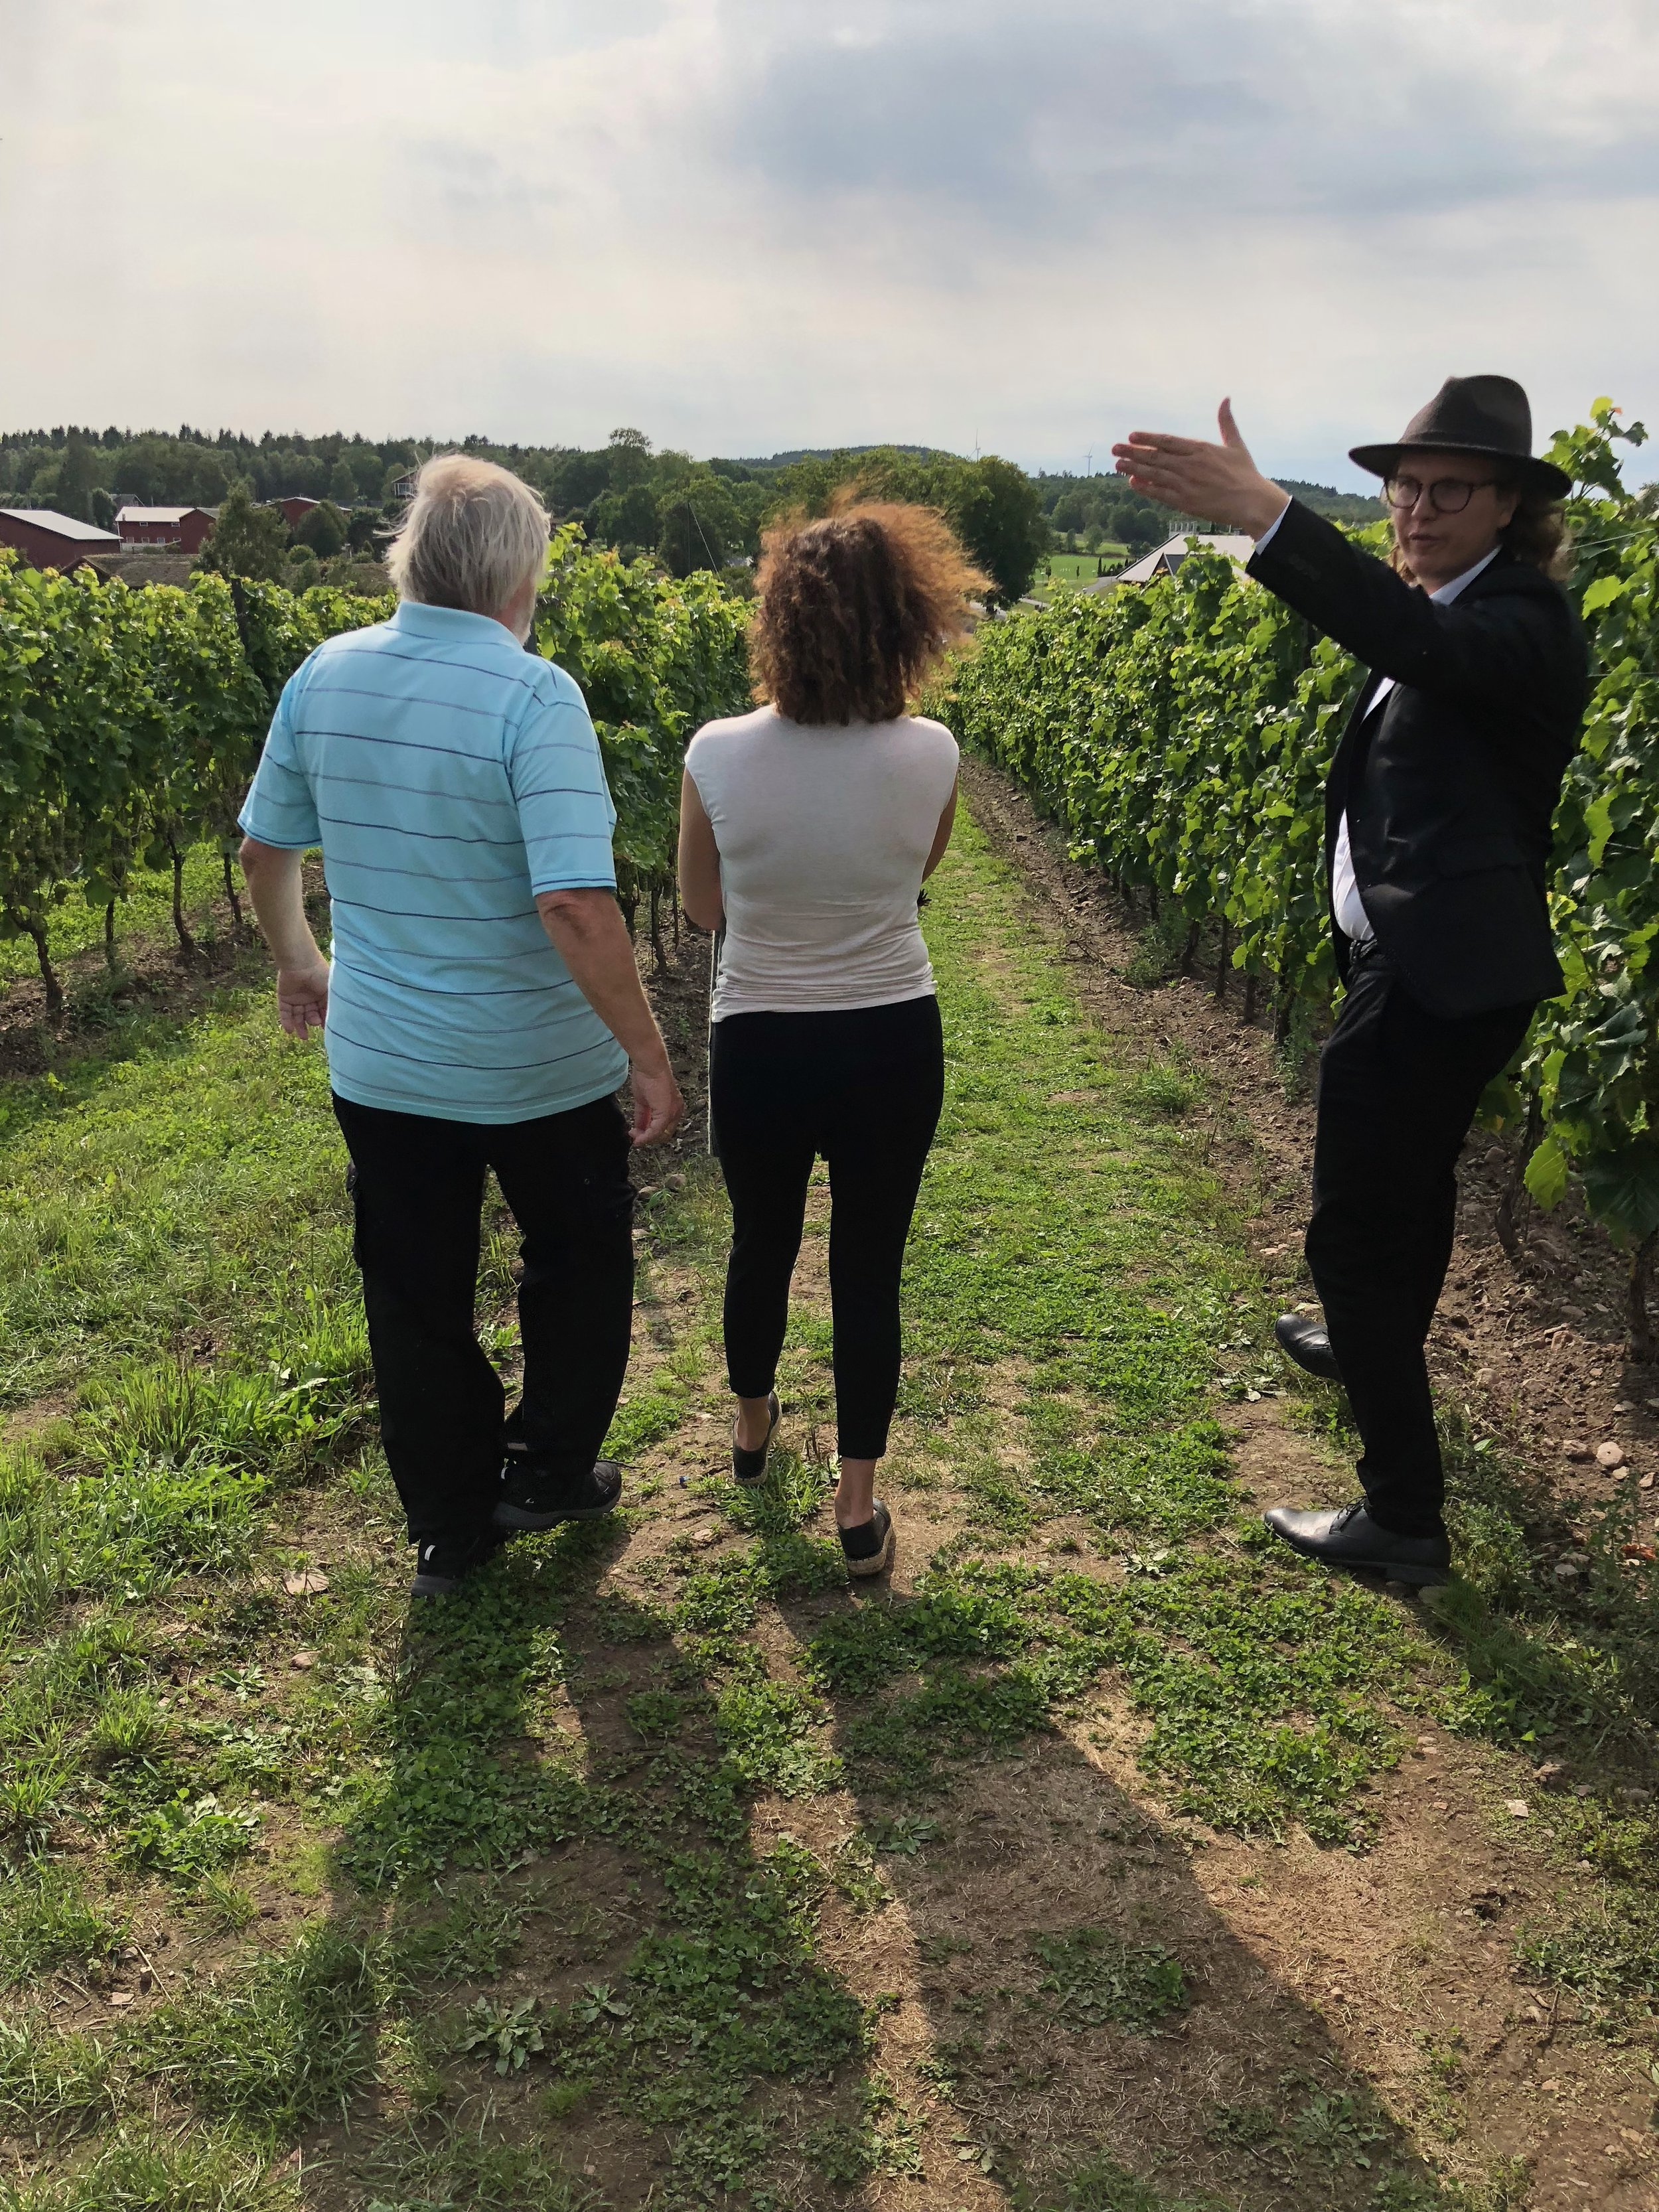 Touring the vineyard, just a couple of weeks before harvest